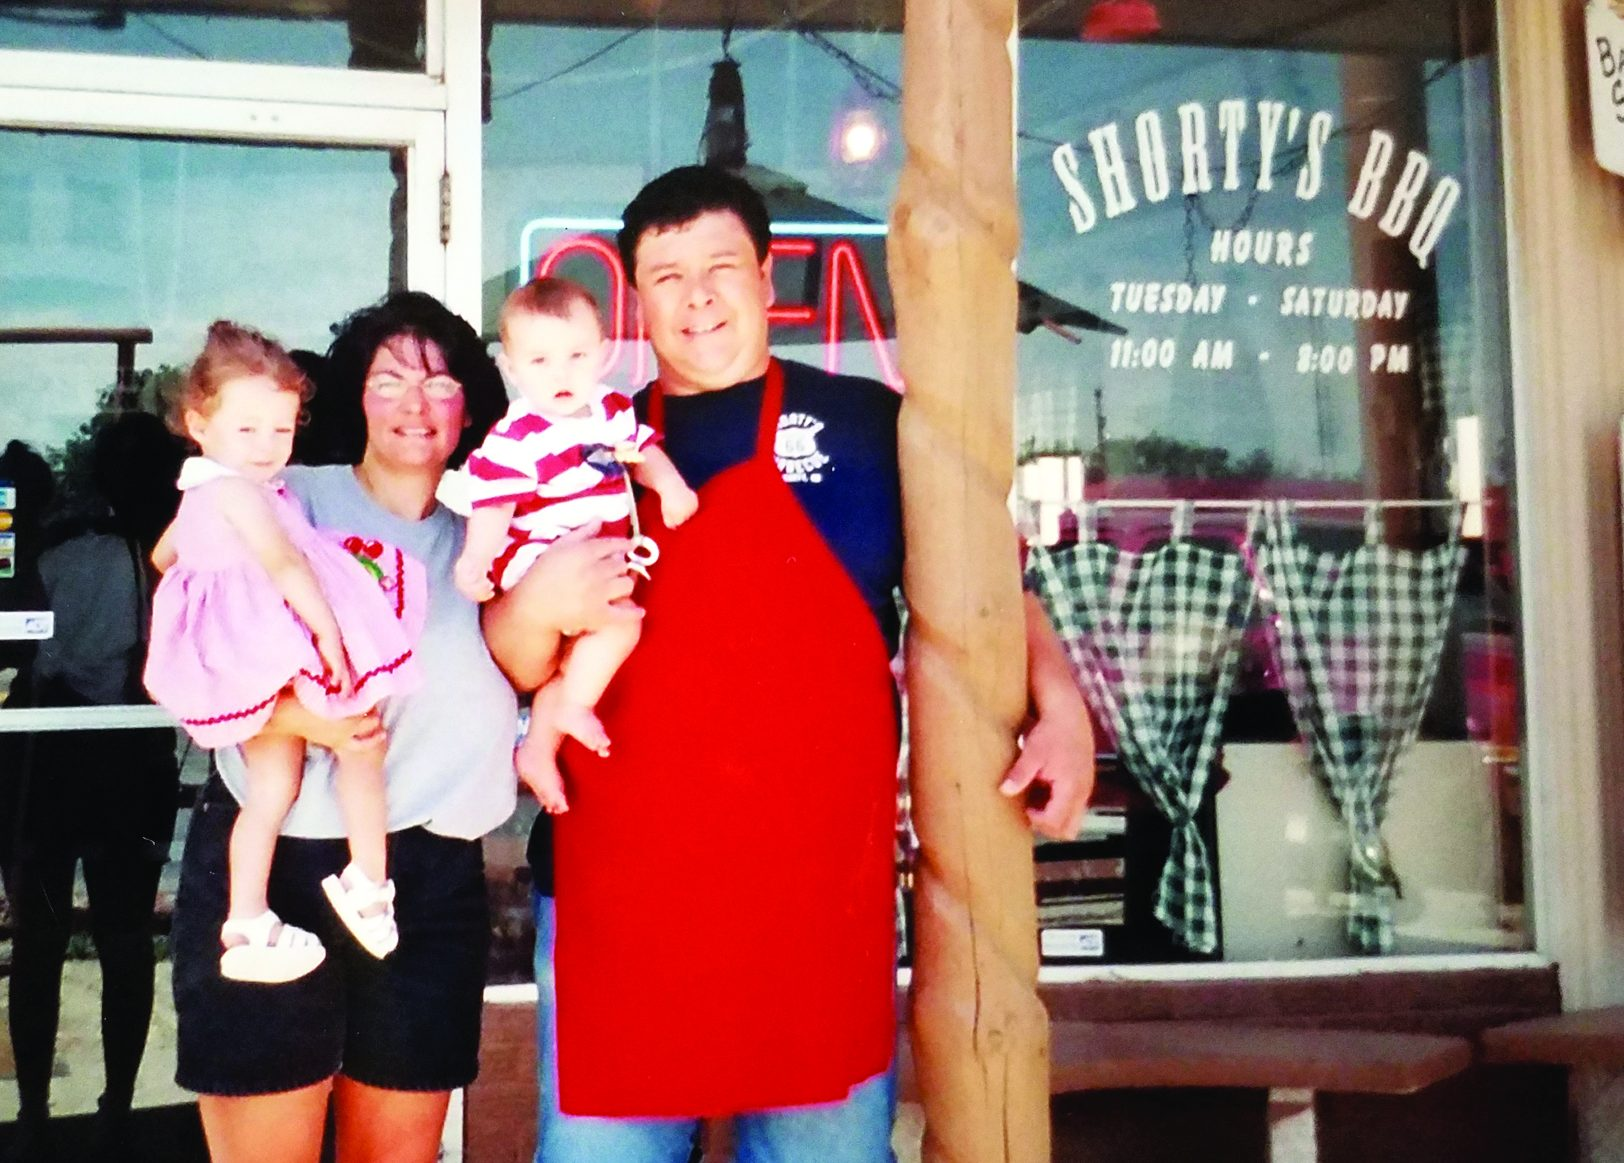 Shorty's celebrates 20 years in Moriarty